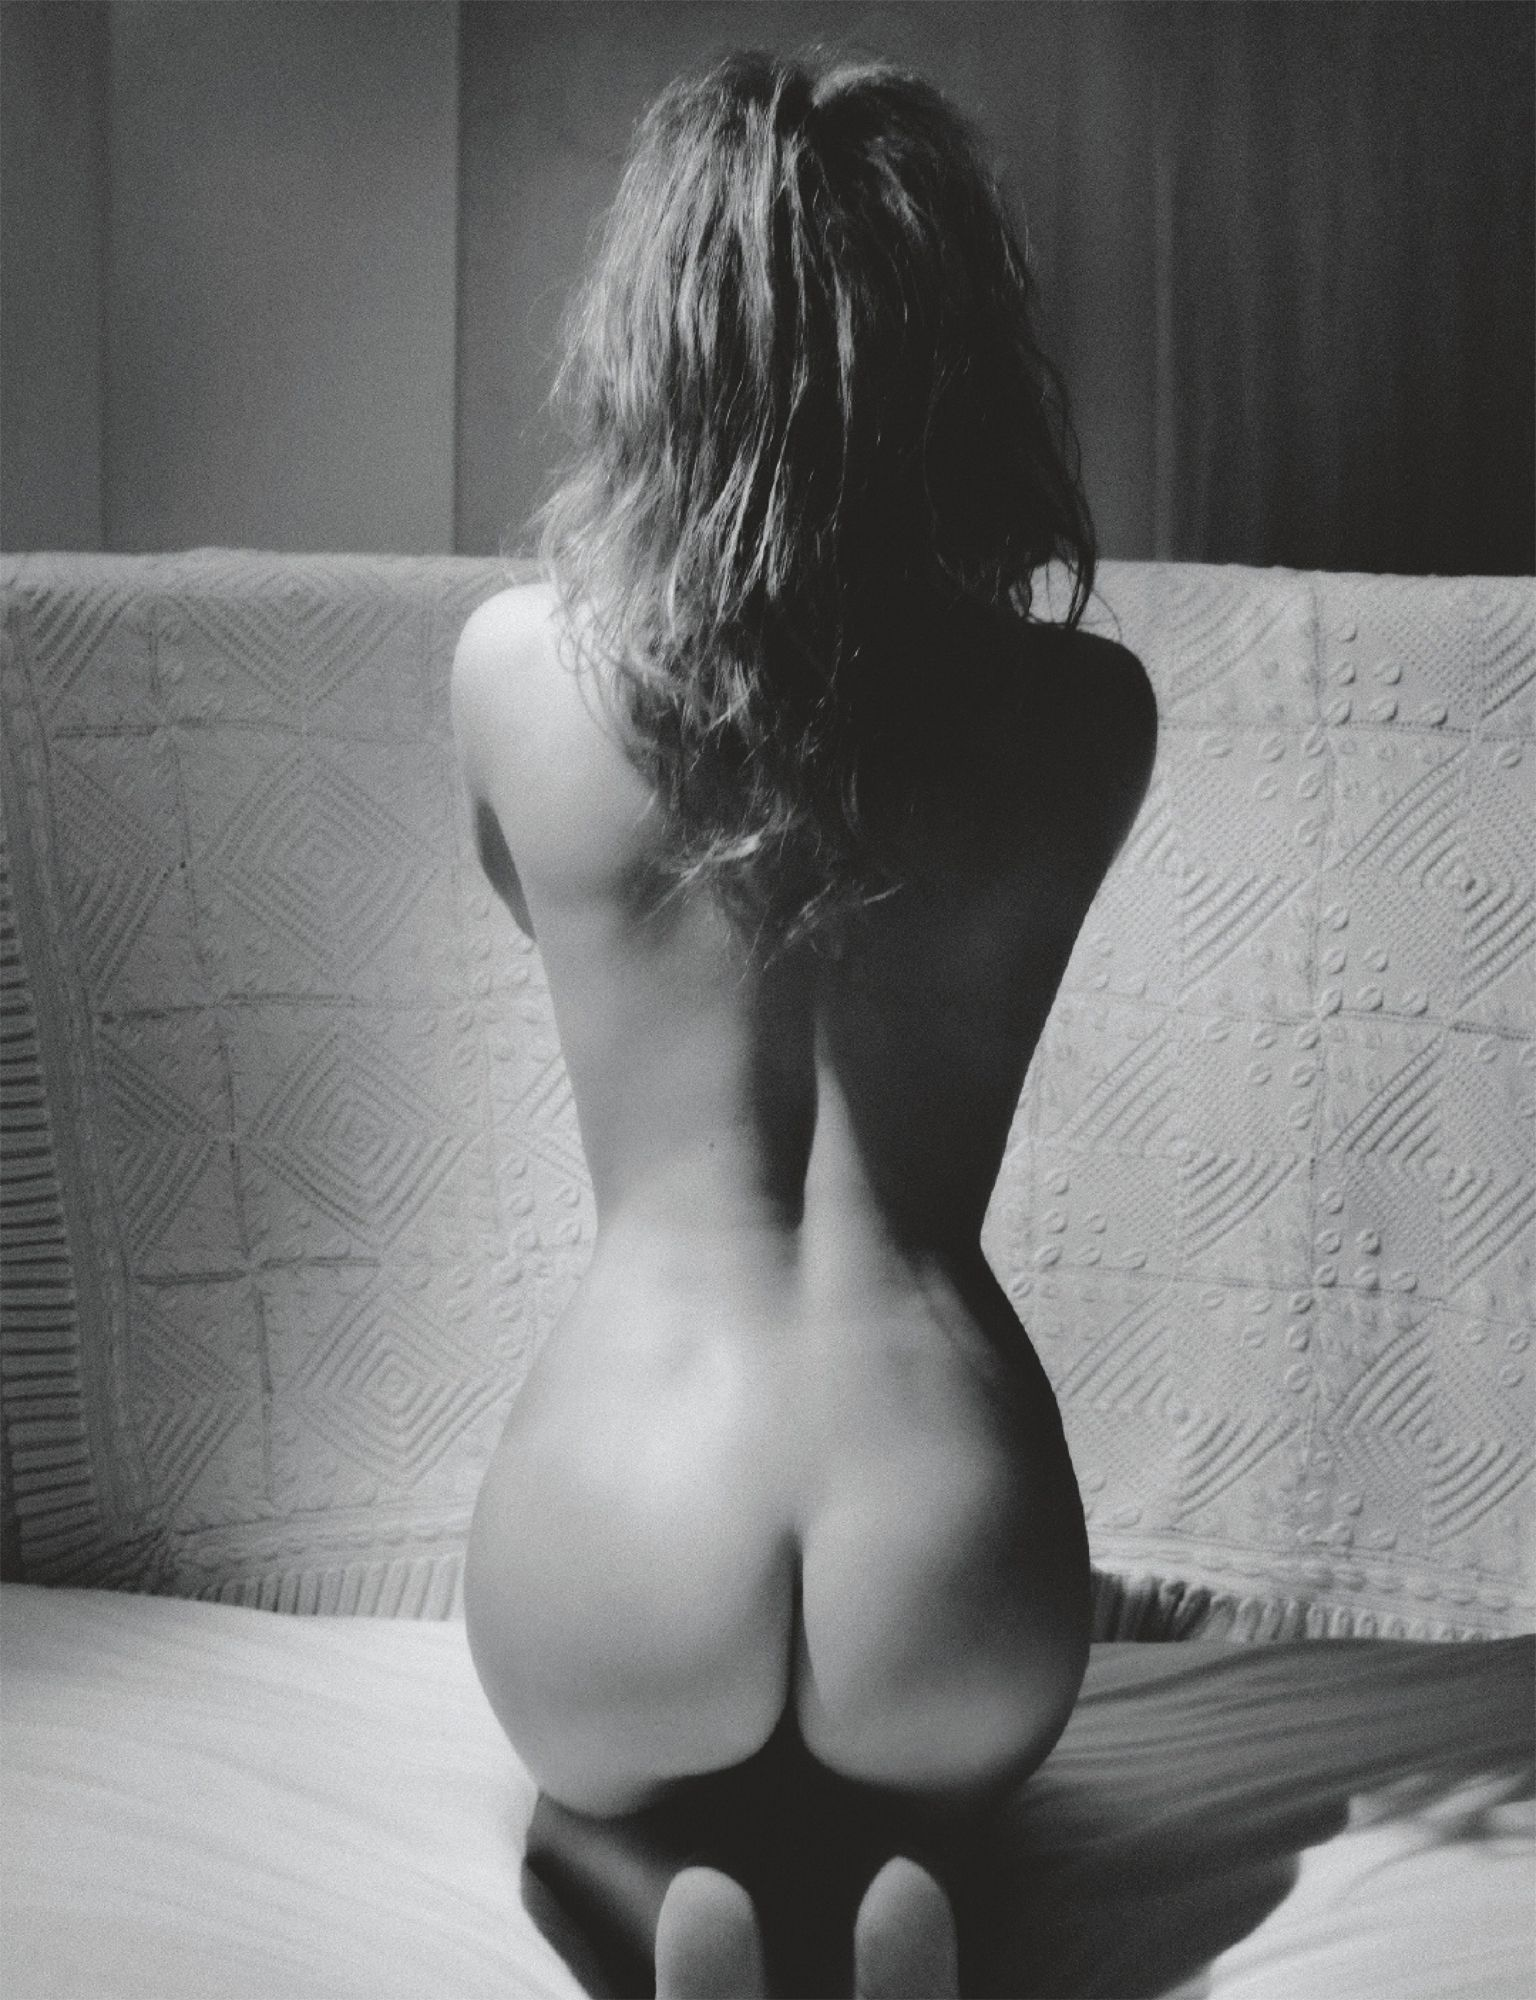 Naked exarchopoulos Adele Exarchopoulos